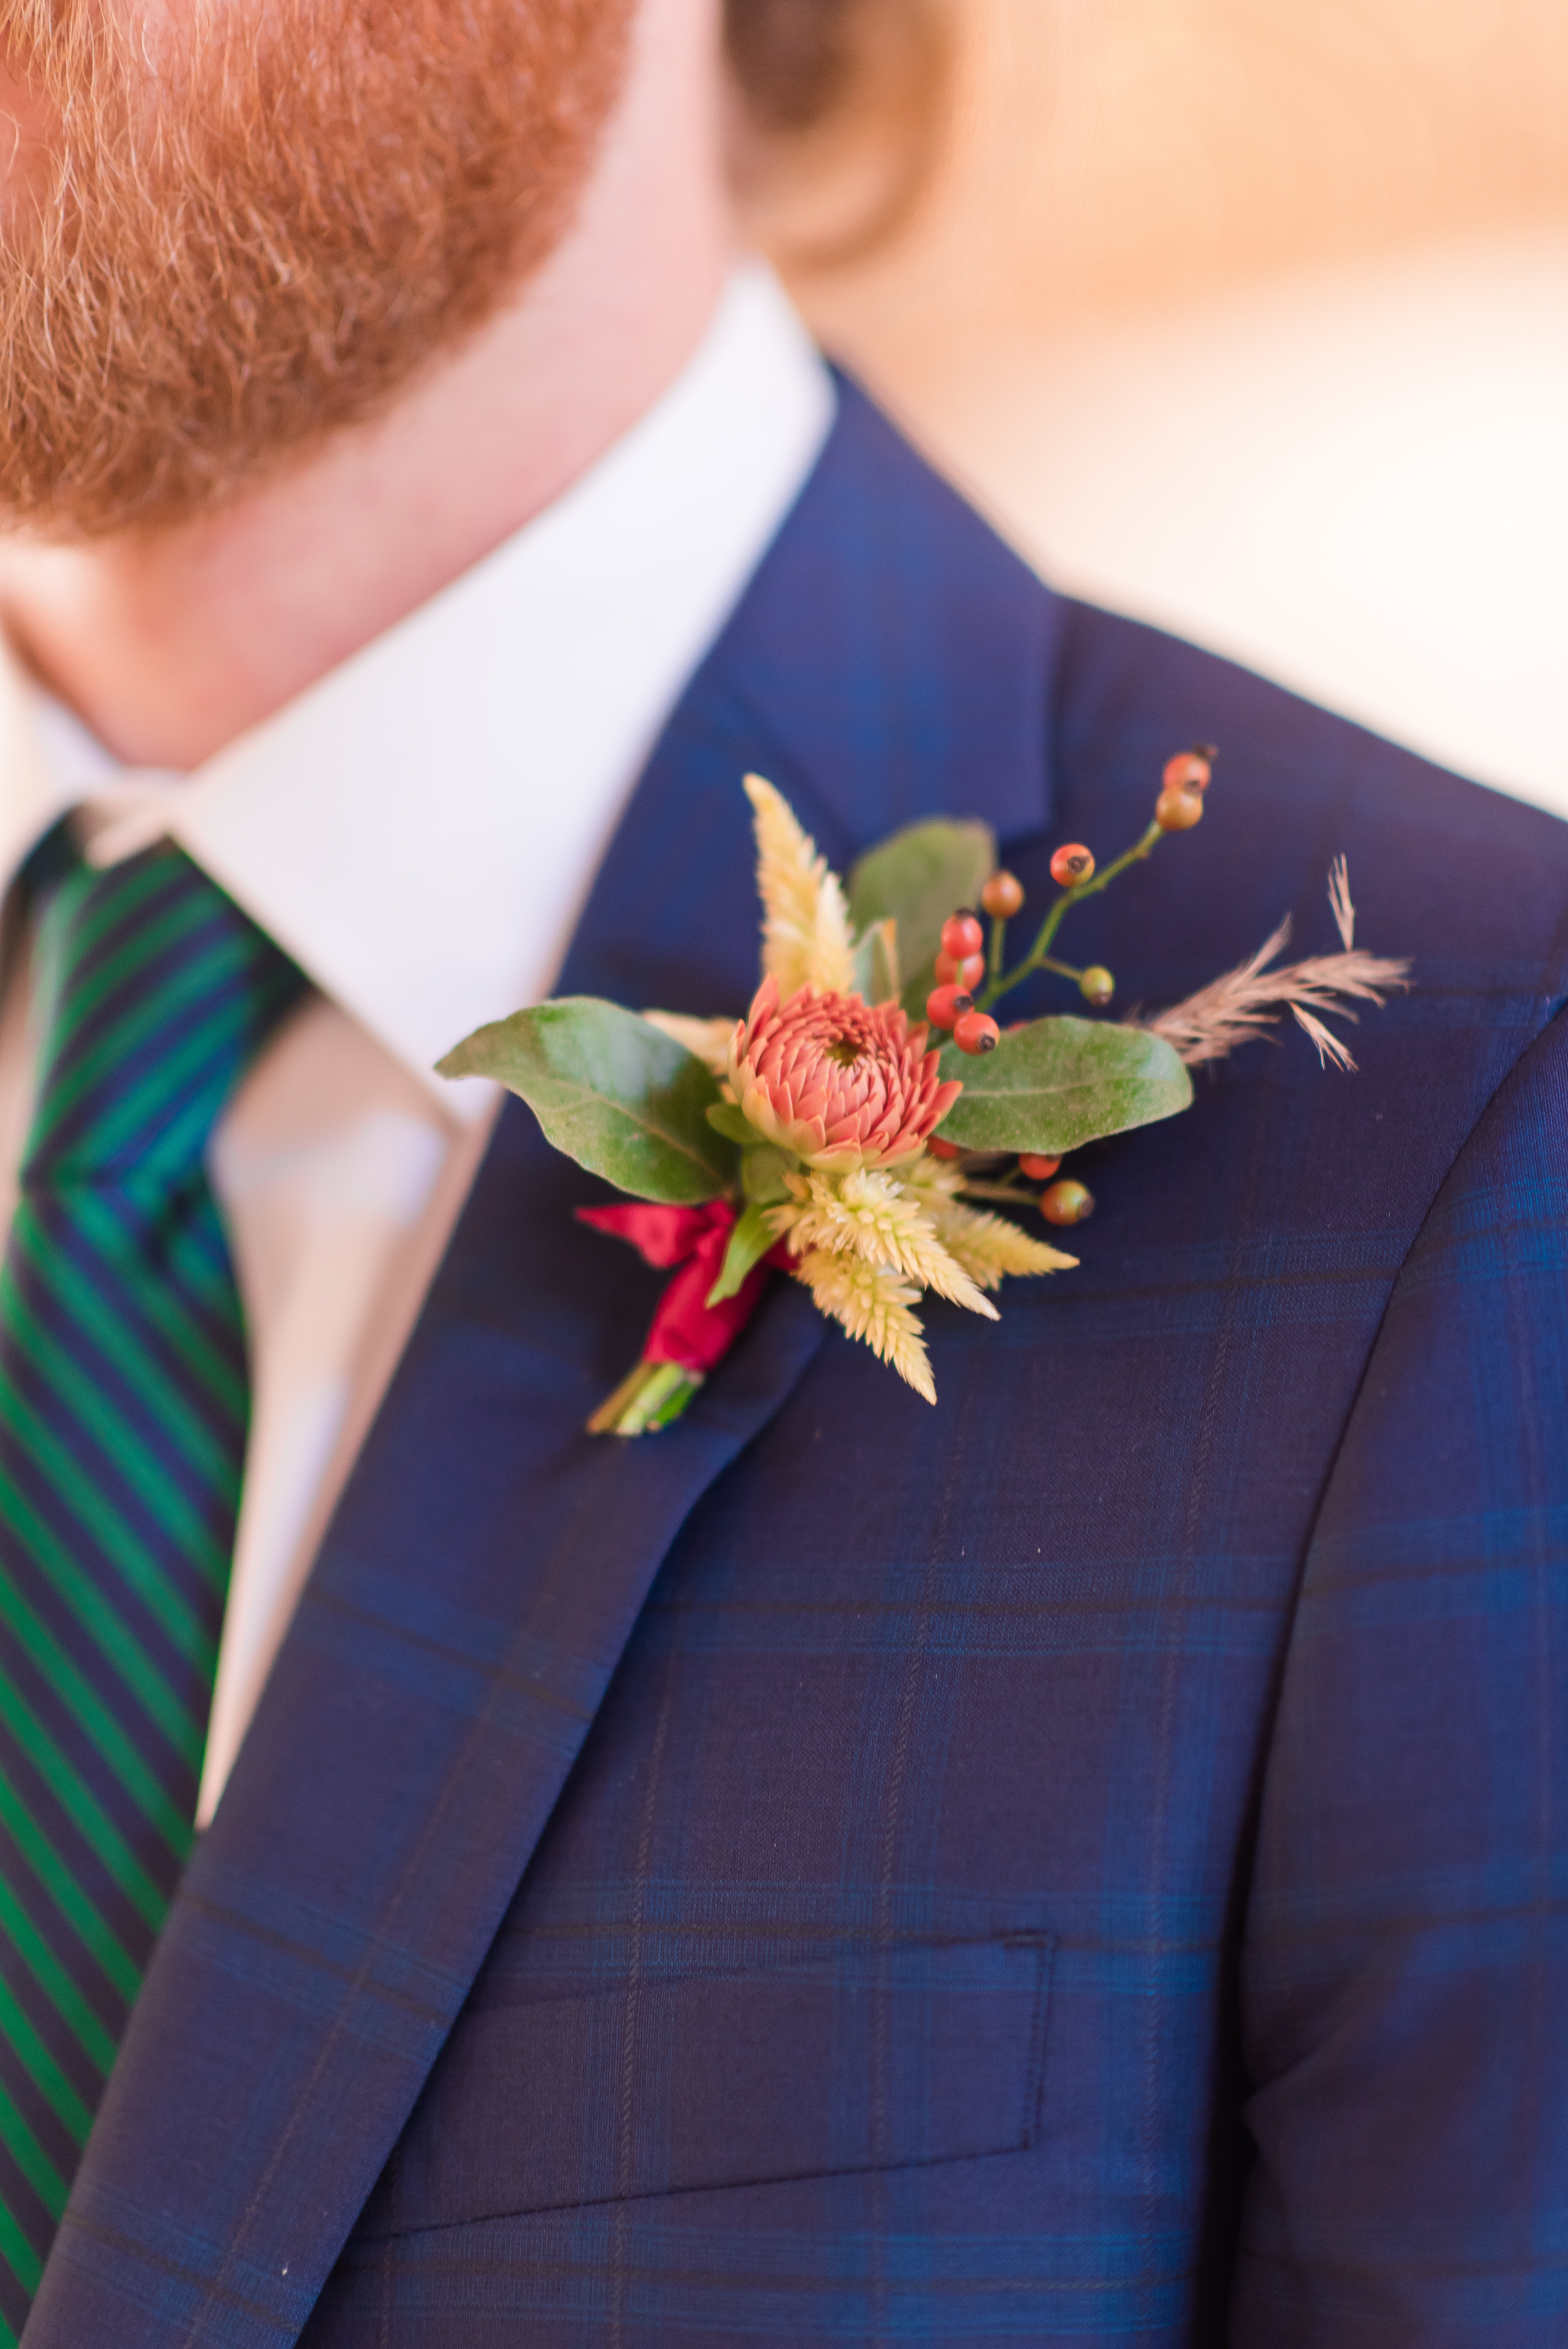 close up of boutonniere on blue suit